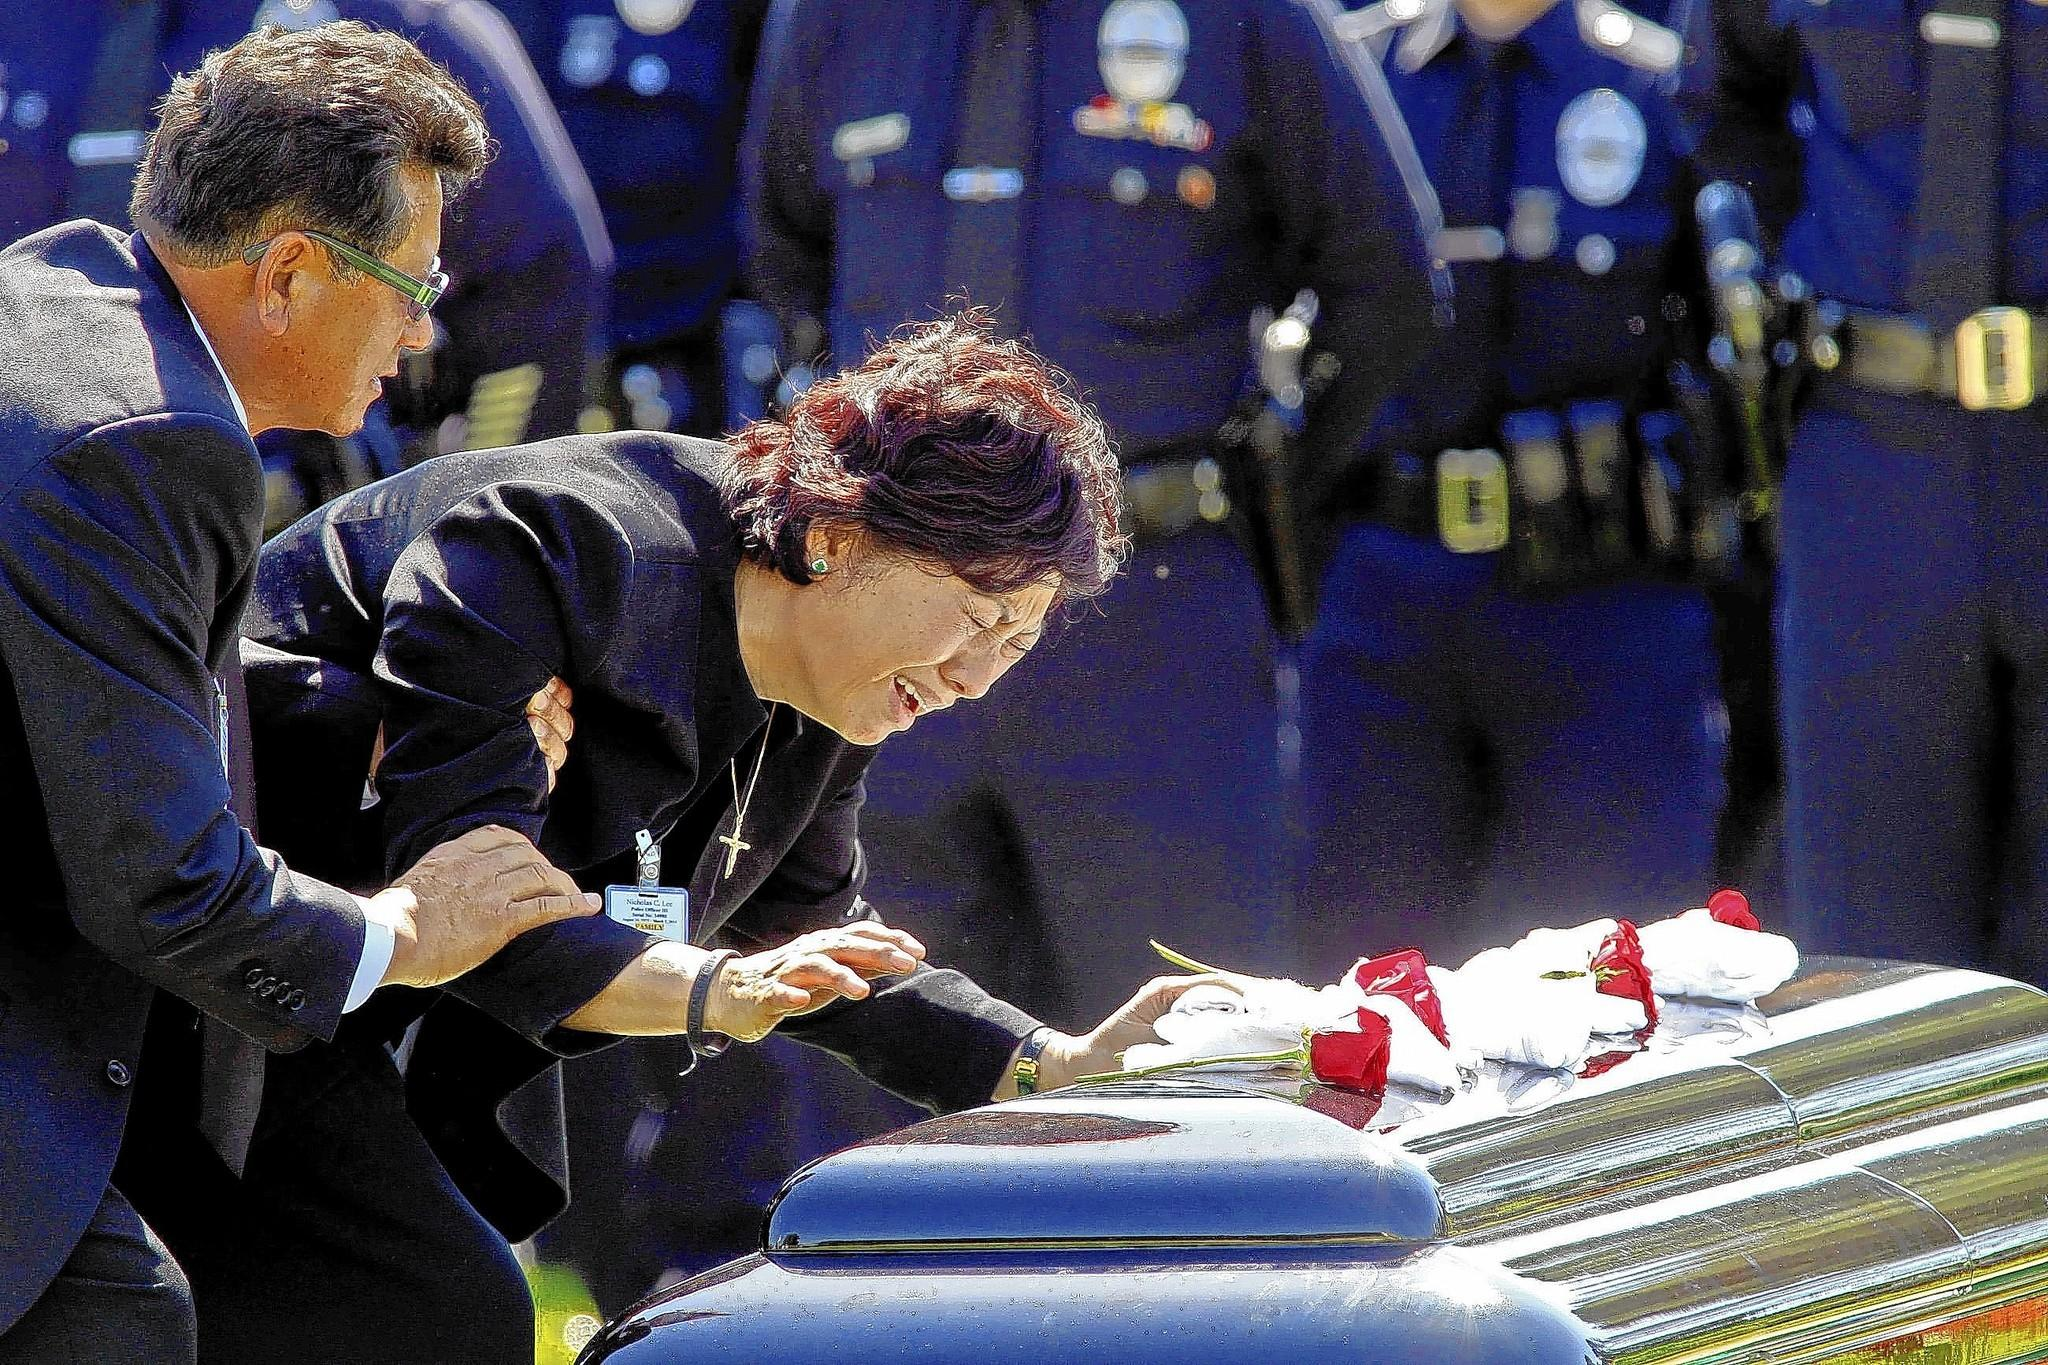 LAPD Officer Nicholas Lee's parents, Heung, left, and Choung, visit his casket during a graveside service at Forest Lawn Memorial Park in Glendale. Lee was killed in a traffic accident last week.